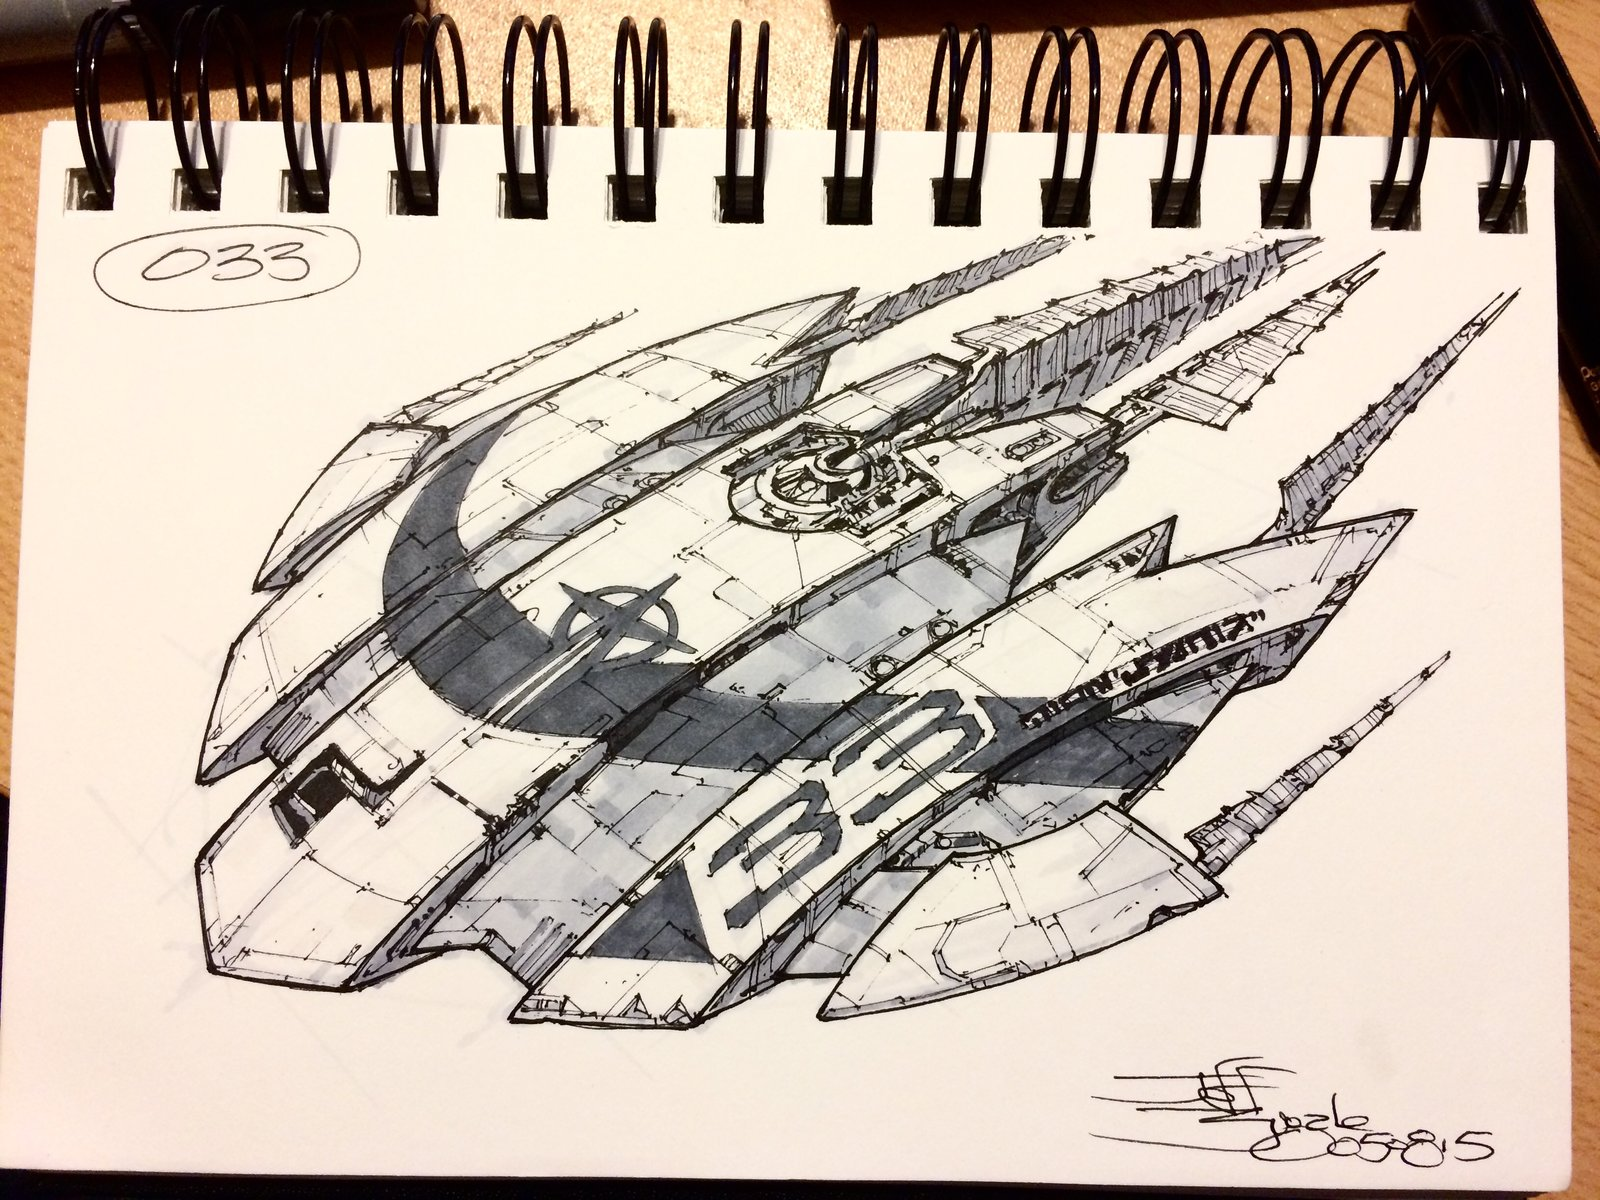 SpaceshipADay 033